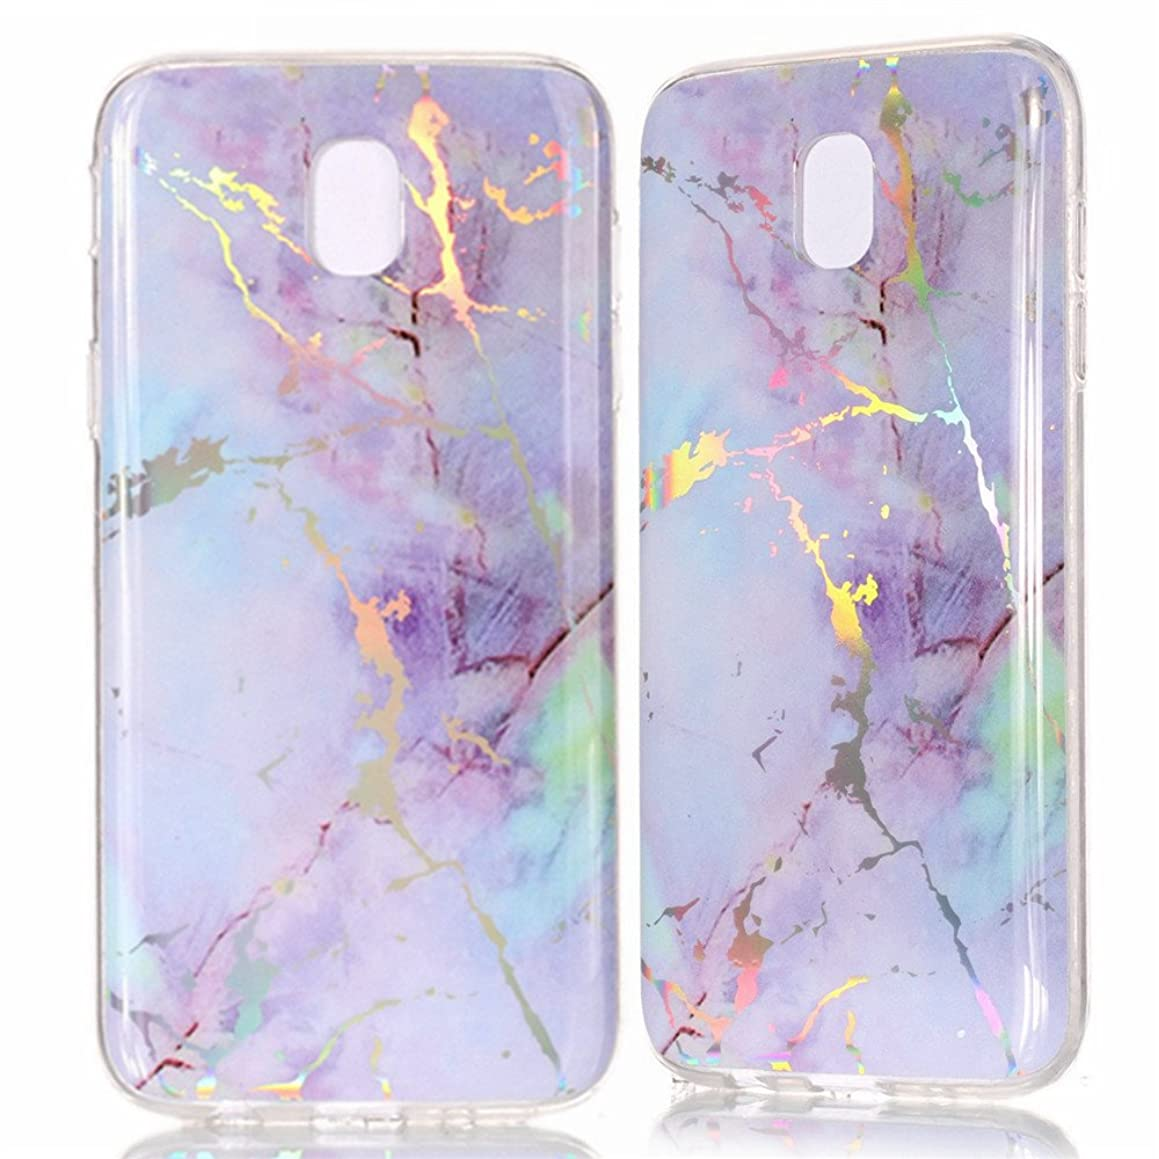 IVY Galaxy J7 Pro (7) Marble Case with Colour Electroplating and TPU Cover Protective Shell For Samsung Galaxy J7 Pro SM-J730 2017 - Purple